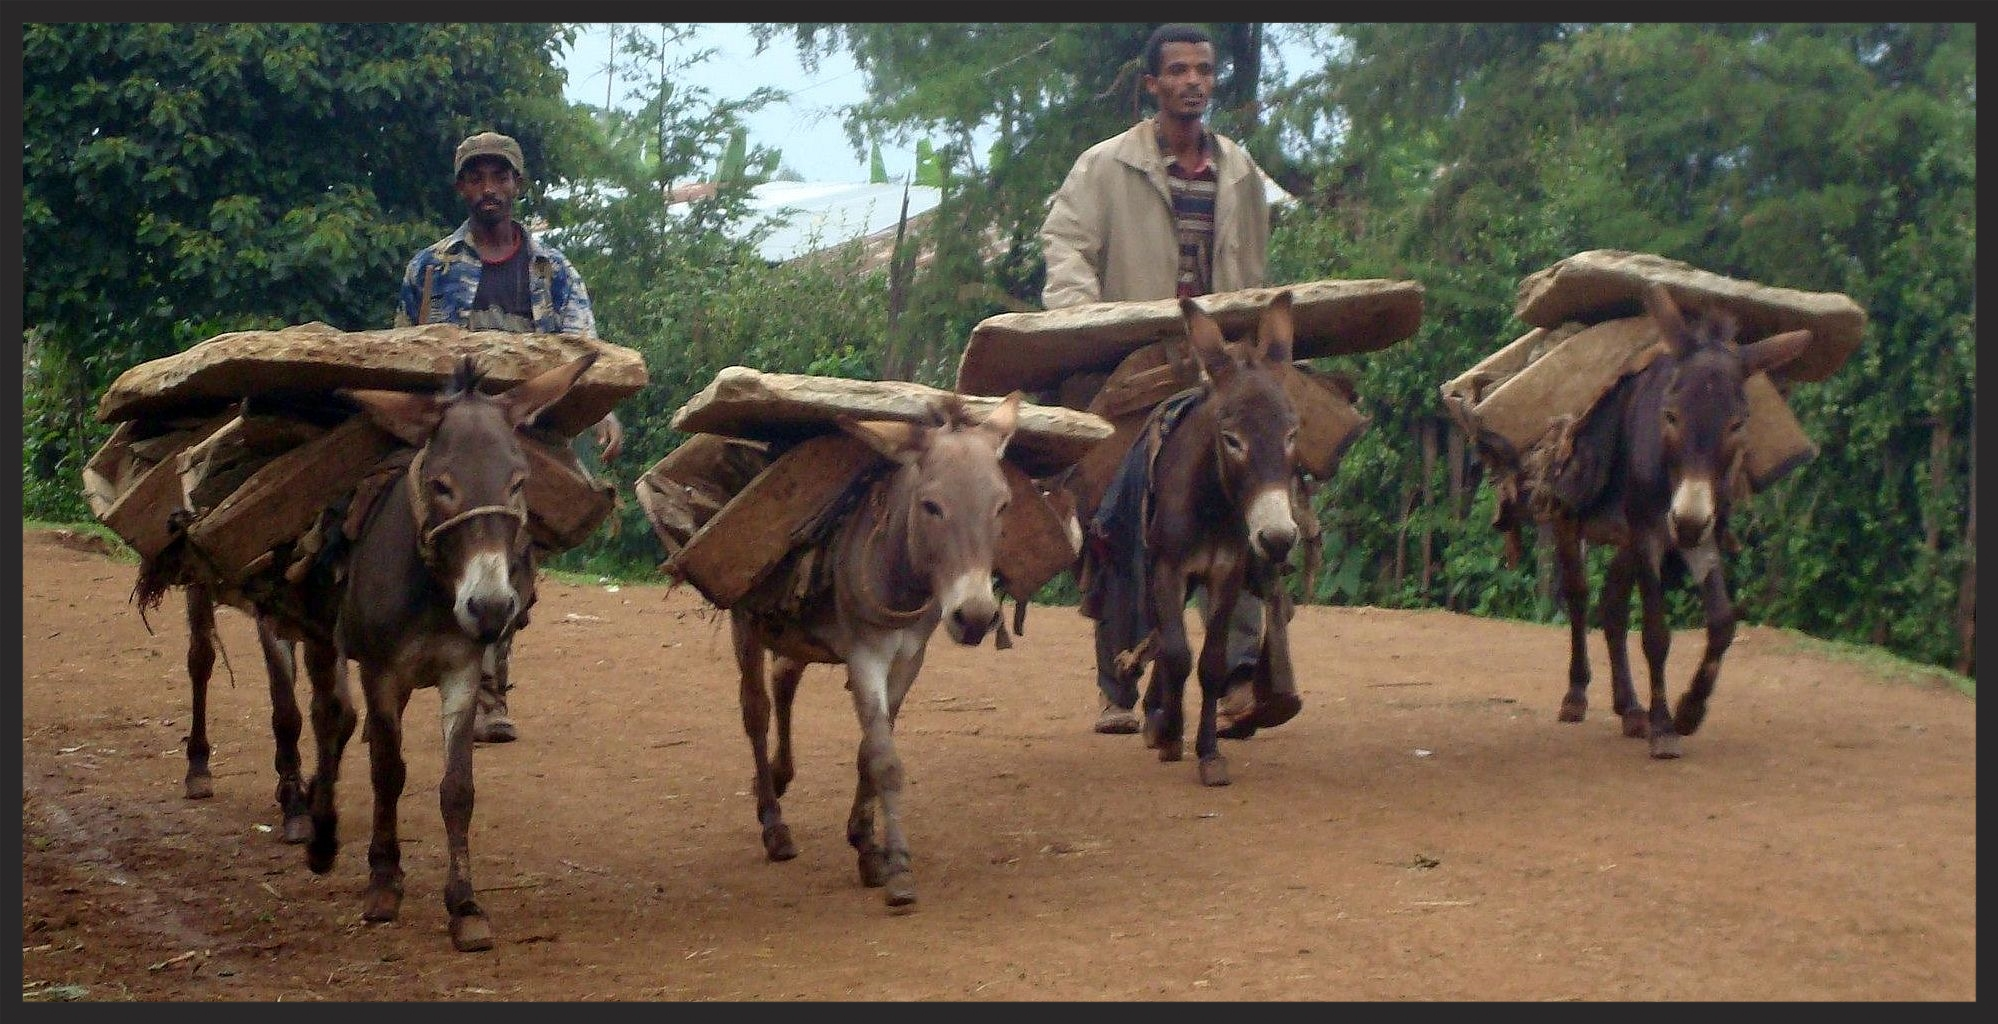 These donkeys, like thousands of others in Ethiopia, work in a quarry, carrying very heavy stones all day. Wouldn't access to a permanent water trough be appreciated!